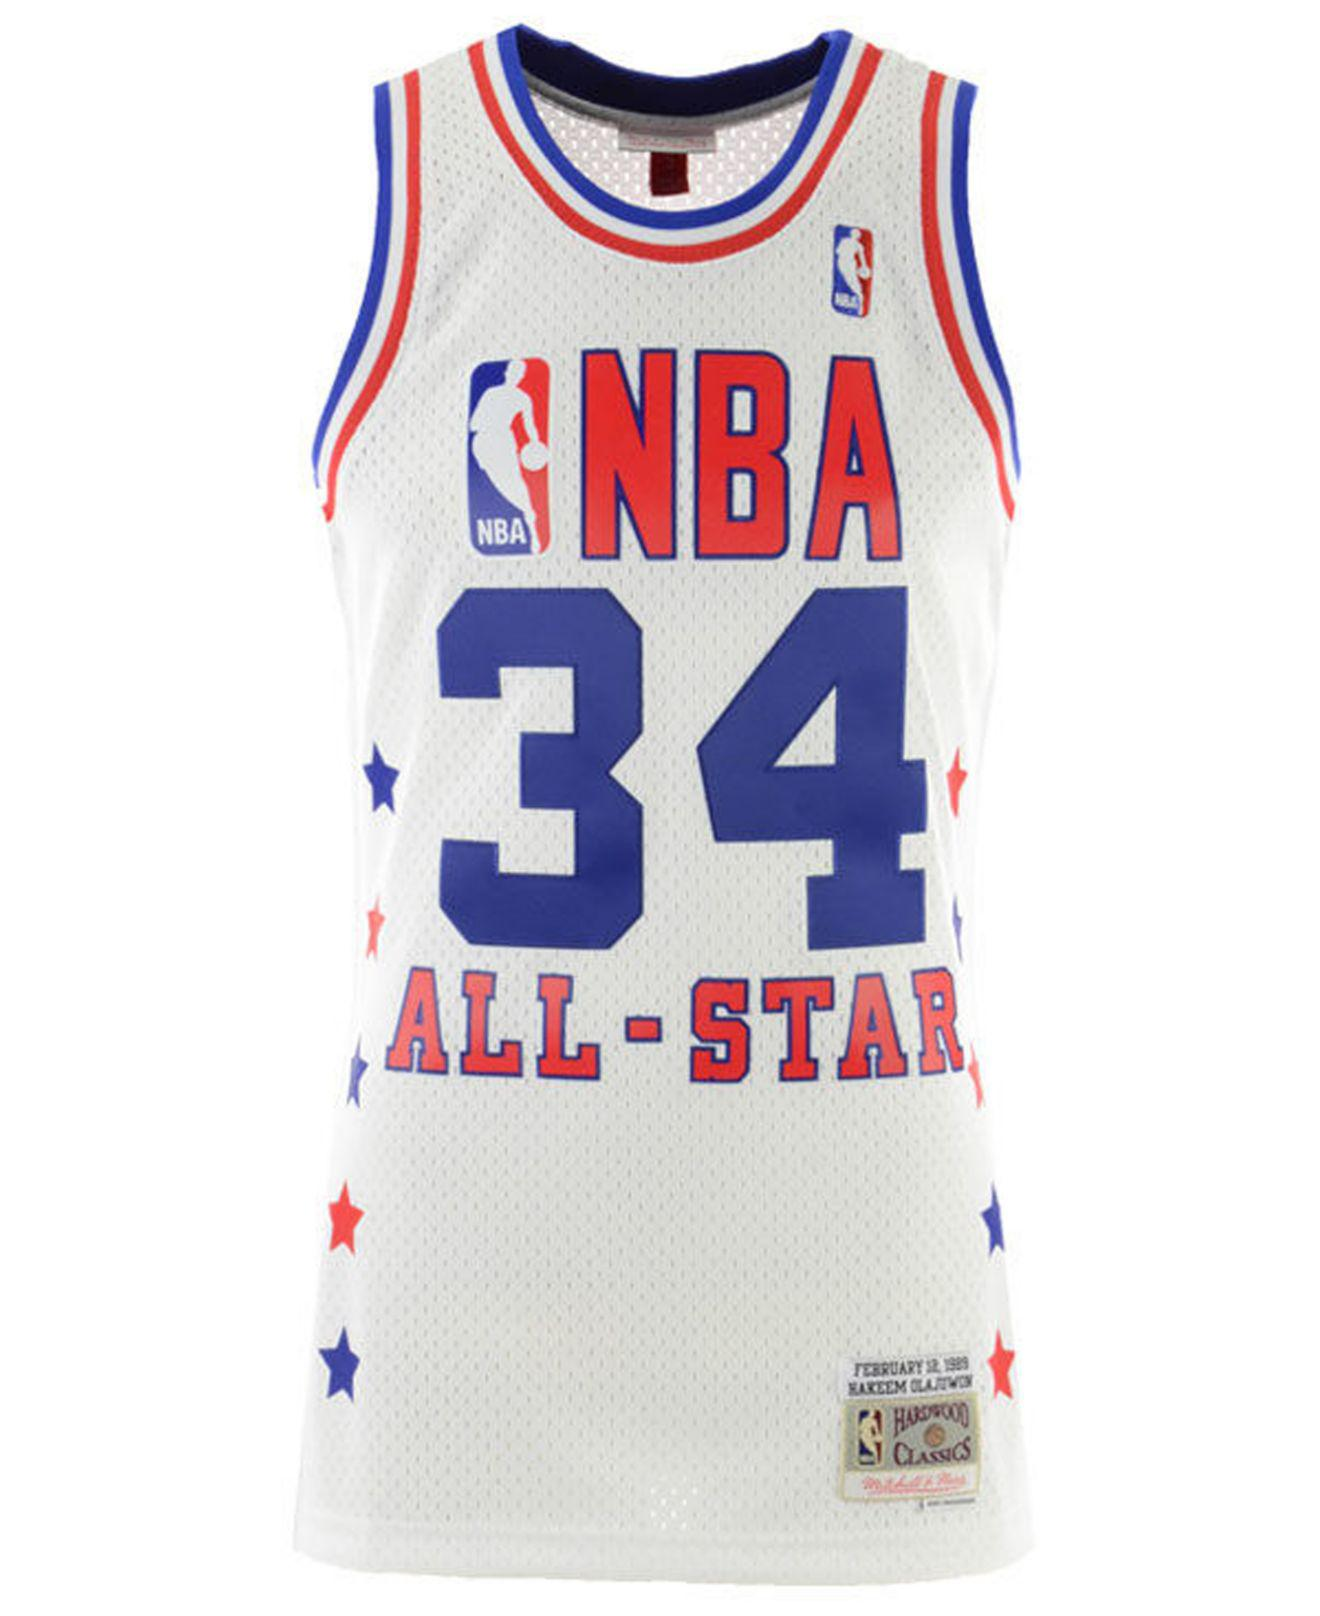 separation shoes 97933 3958a Men's Blue Hakeem Olajuwon Nba All Star 1989 Swingman Jersey